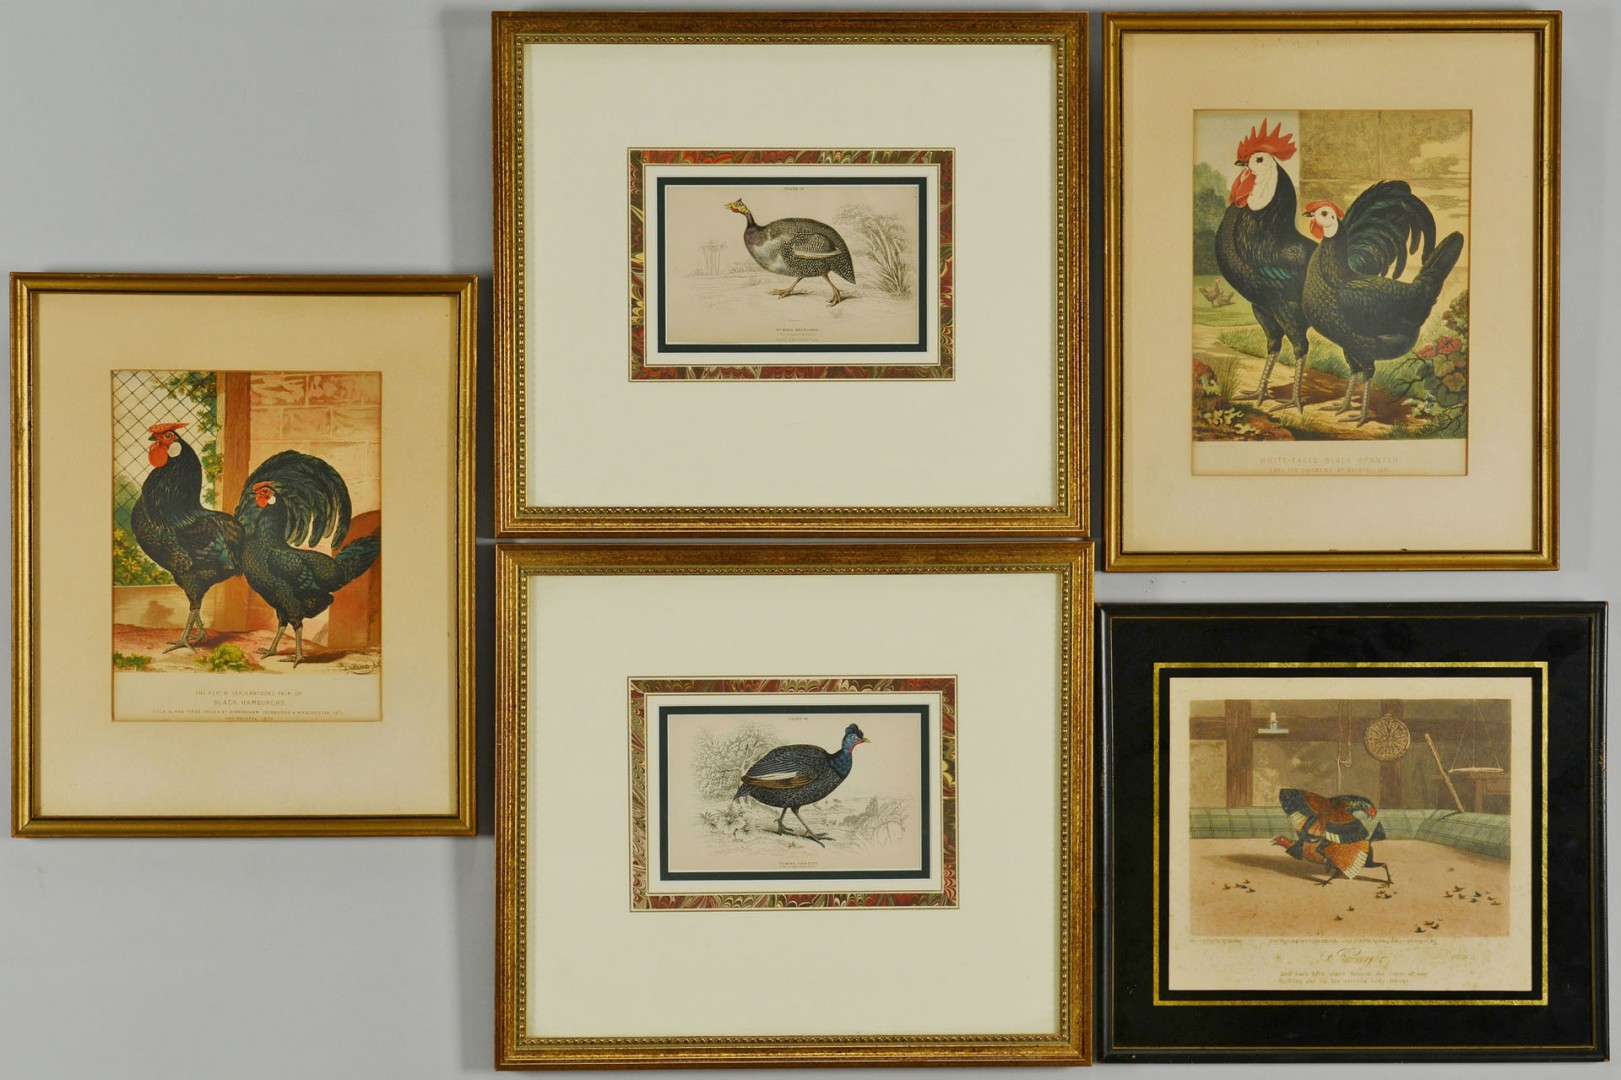 Lot of 5 Chicken & Guinea Fowl Prints